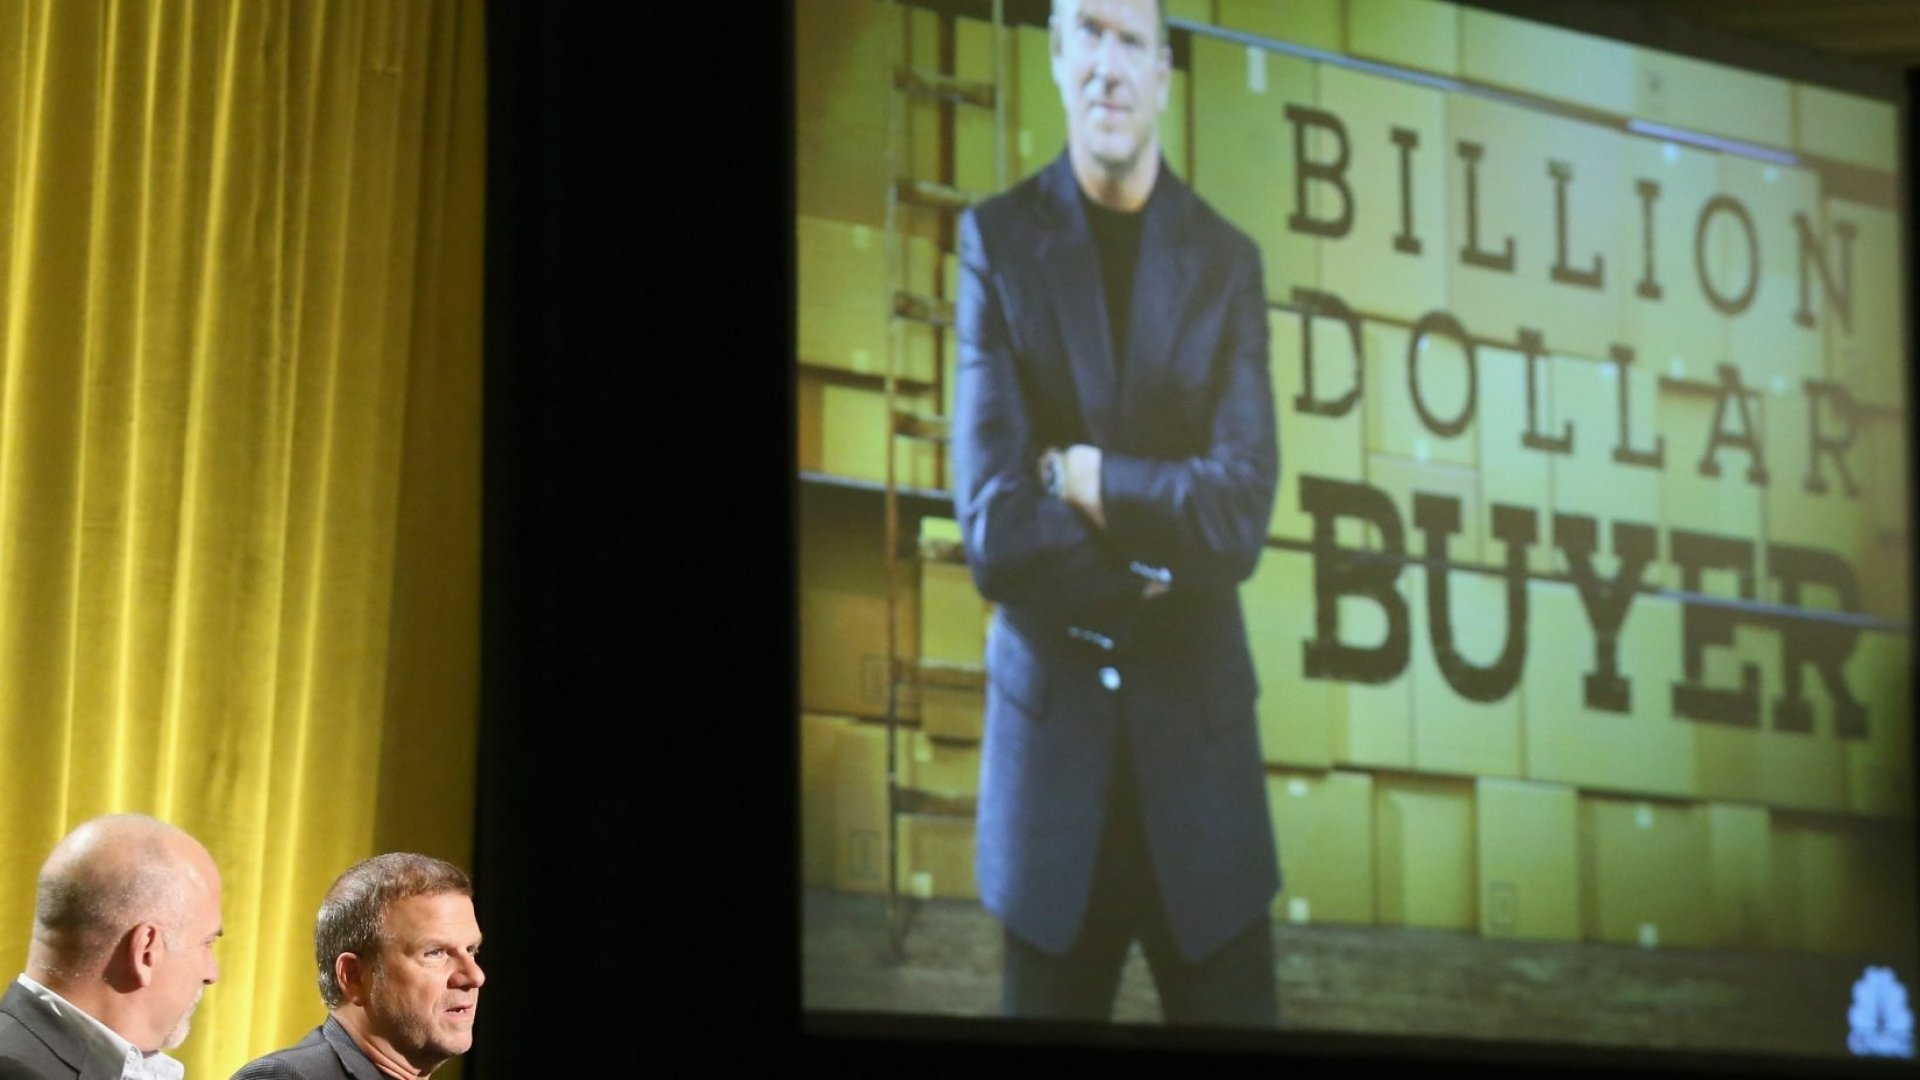 7 Steps to Tell You If Your Million Dollar Idea Can Be a Billion Dollar Business